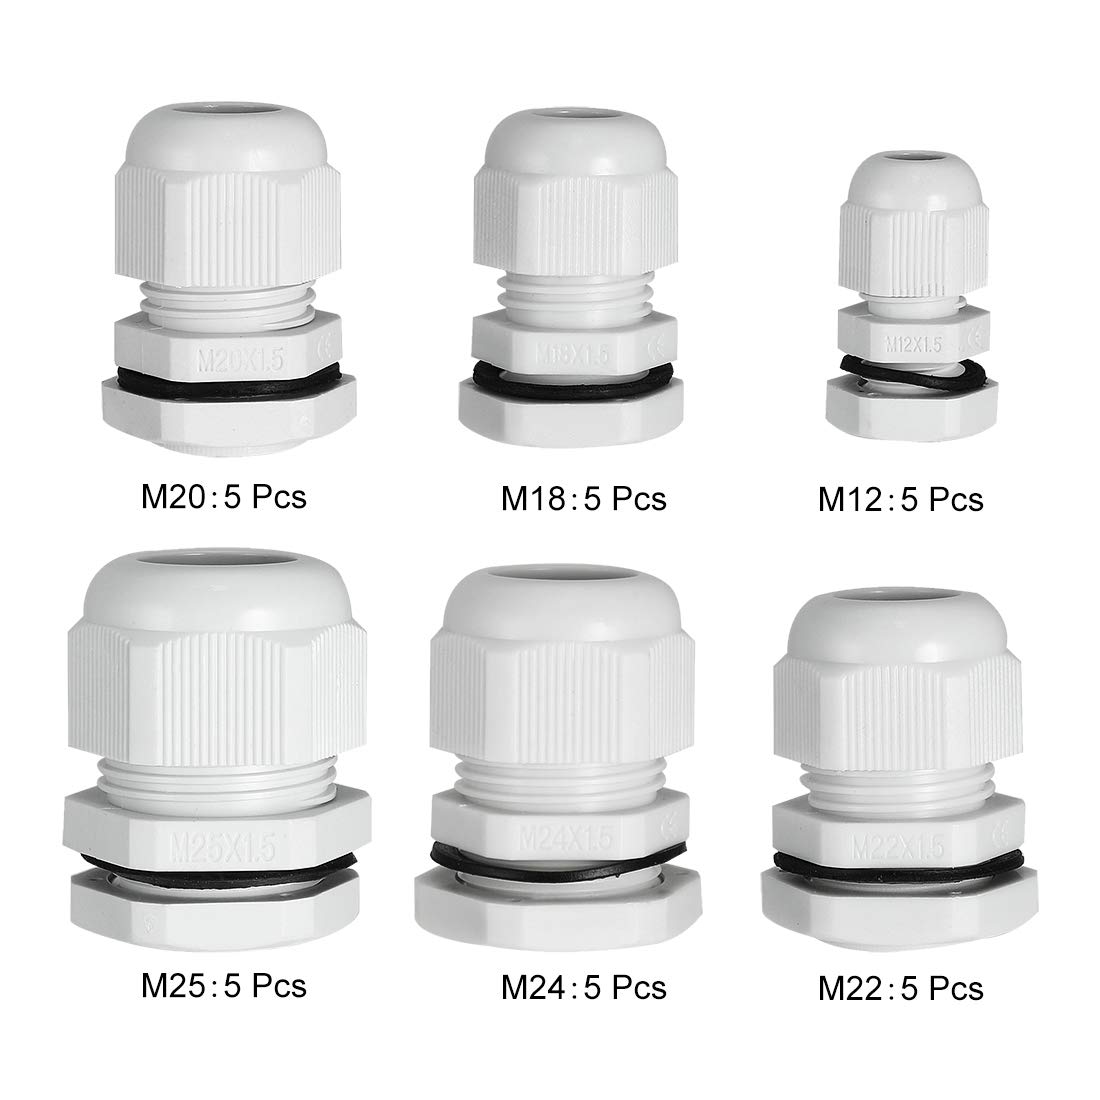 Pack of 30 uxcell M12 M18 M20 M22 M24 M25 Waterproof IP68 Nylon Cable Gland Joint Adjustable Locknut for 3mm-18mm Dia Cable Wire